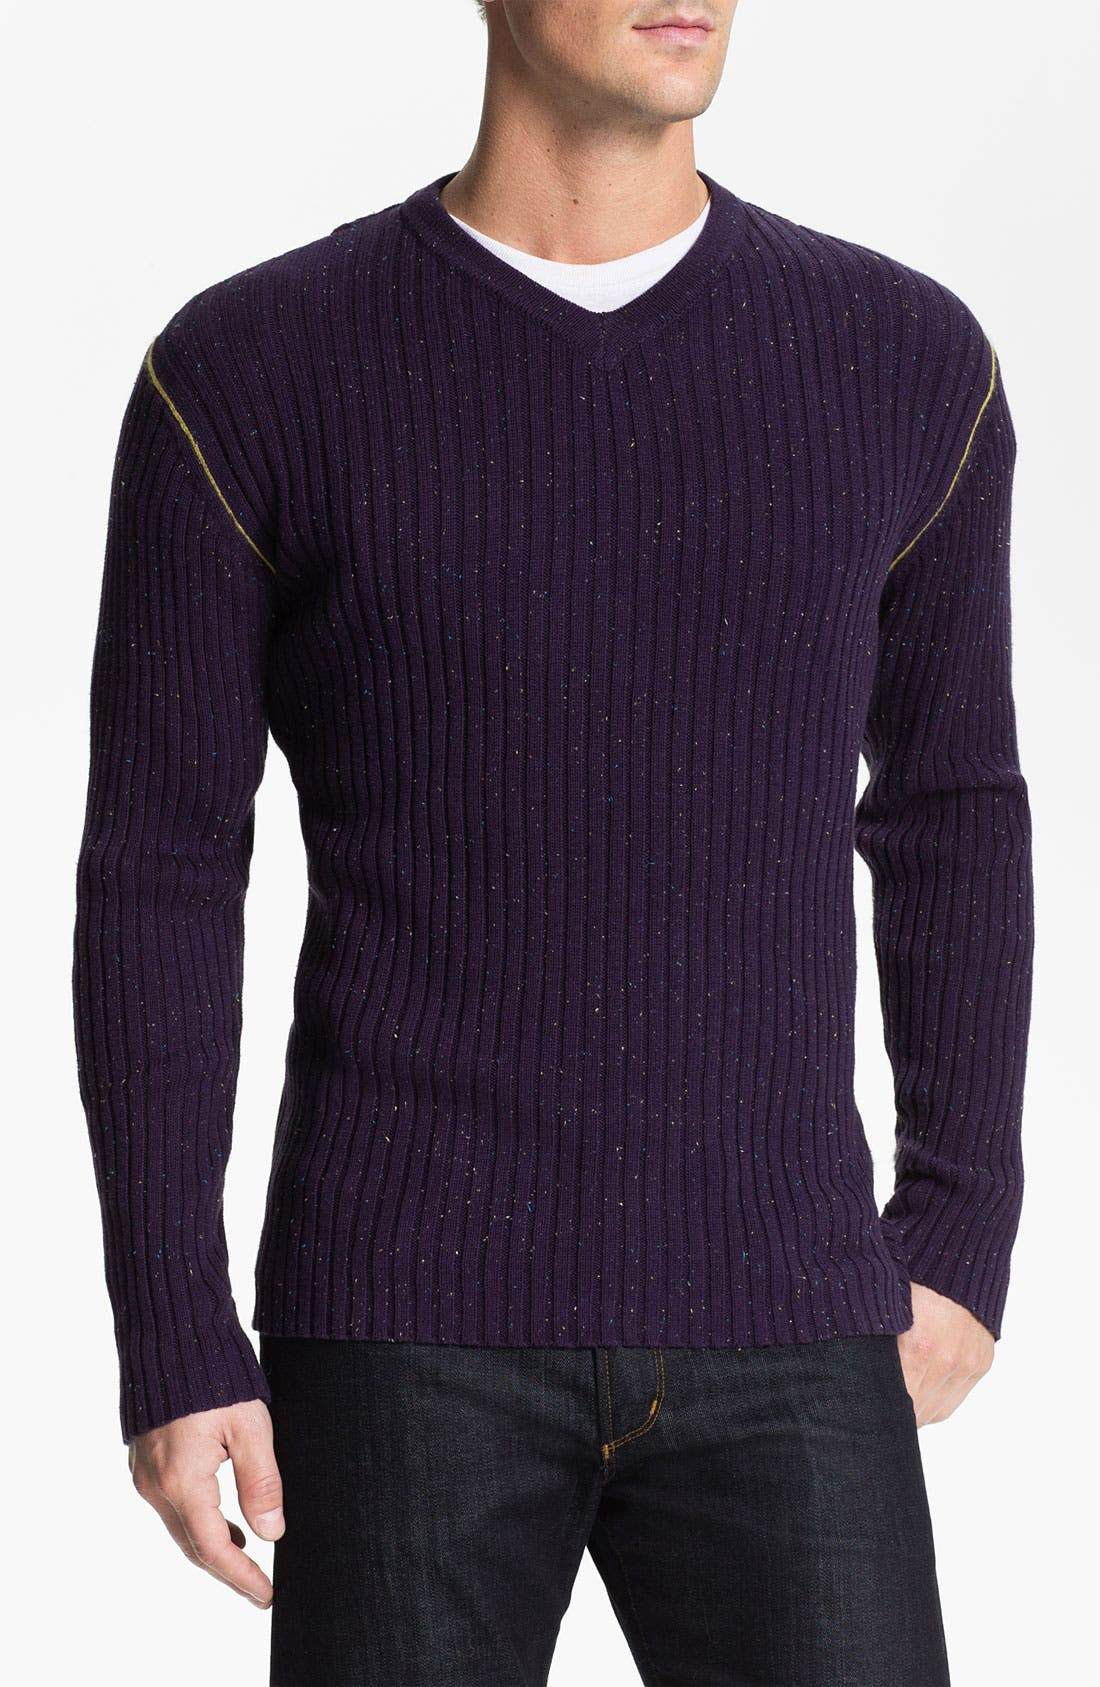 Alternate Image 1 Selected - Robert Graham 'Mir' Ribbed V-Neck Sweater